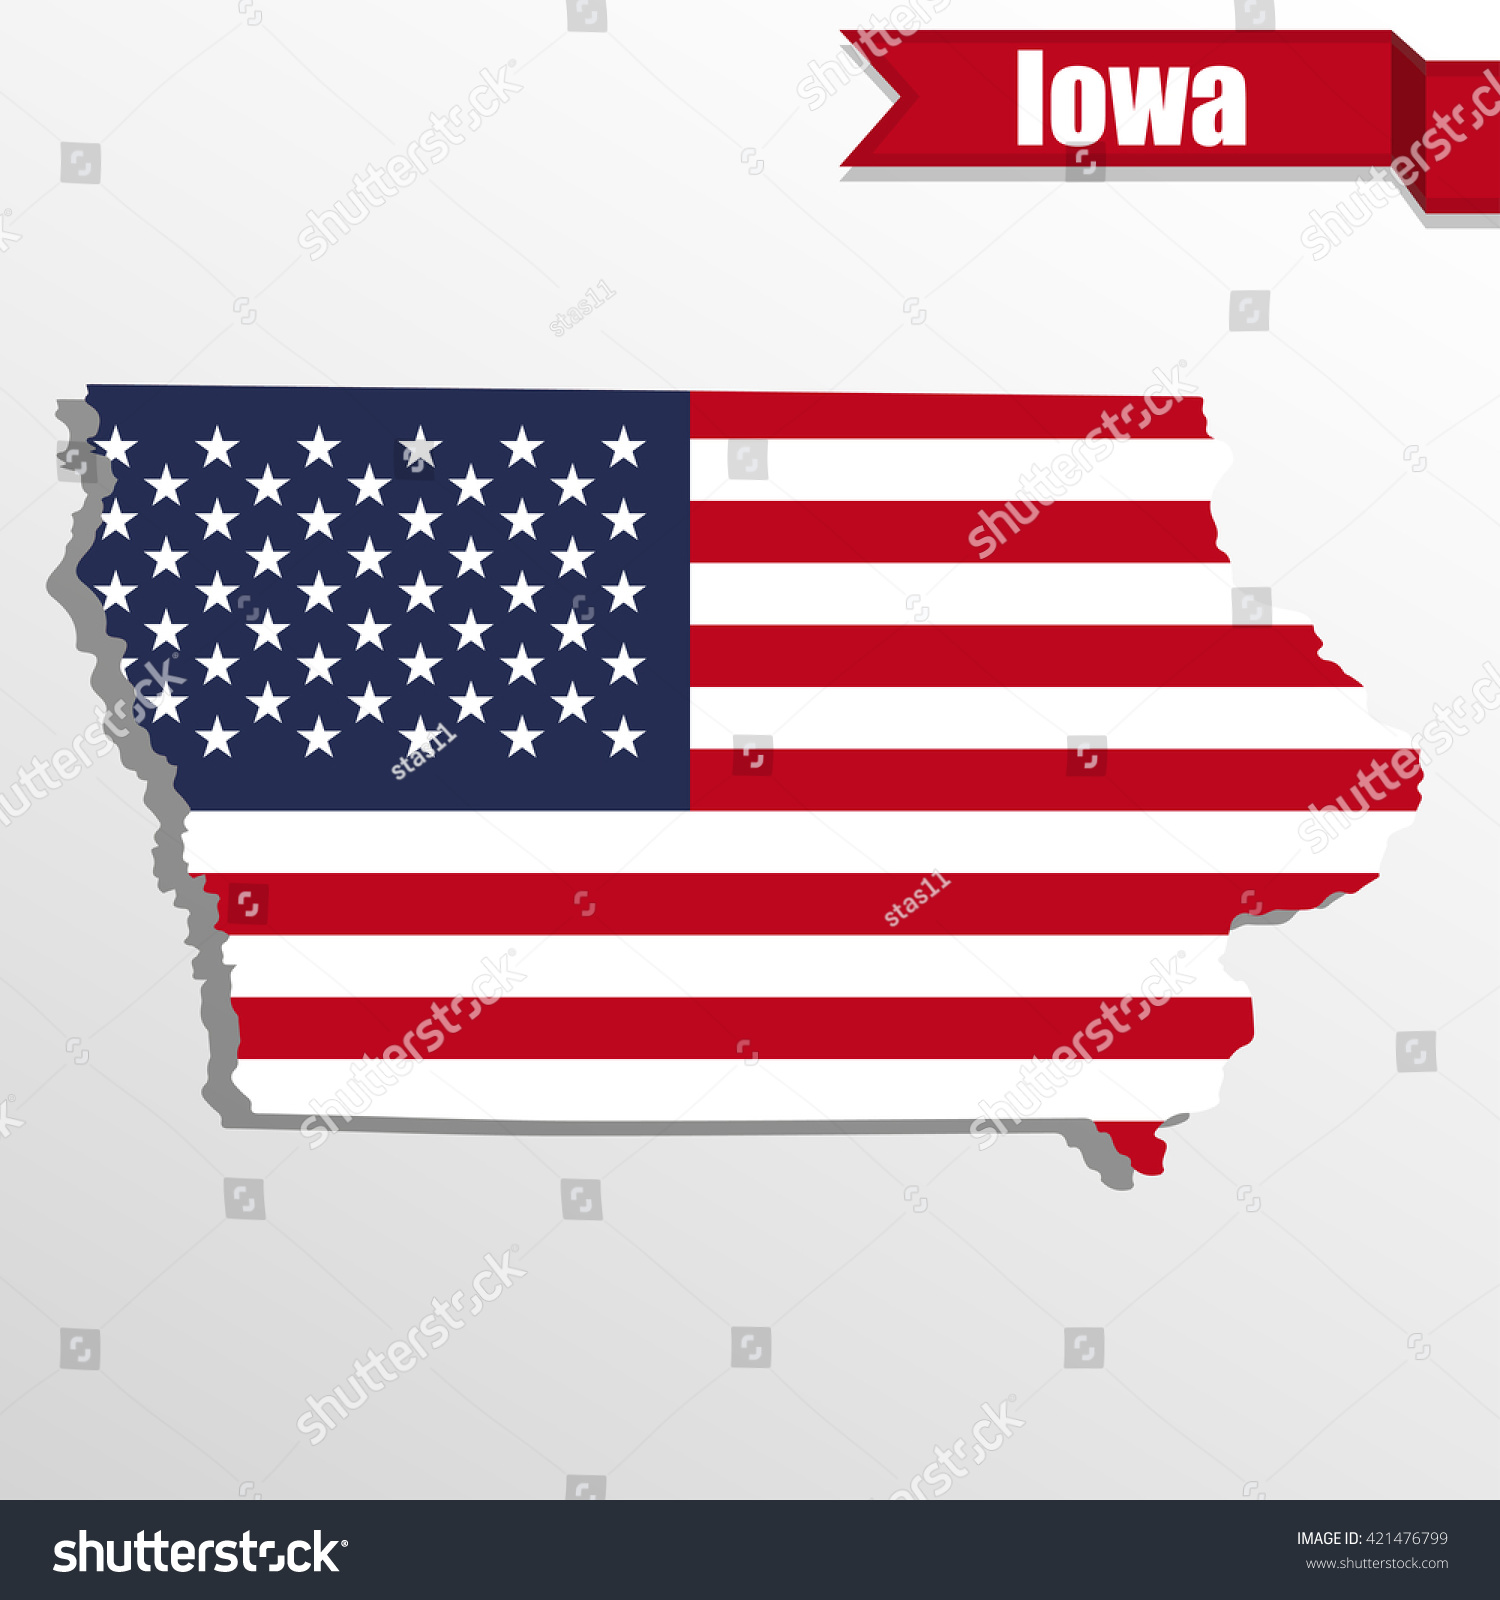 Iowa State Map Us Flag Inside Stock Vector Shutterstock - Where is iowa state on the us map